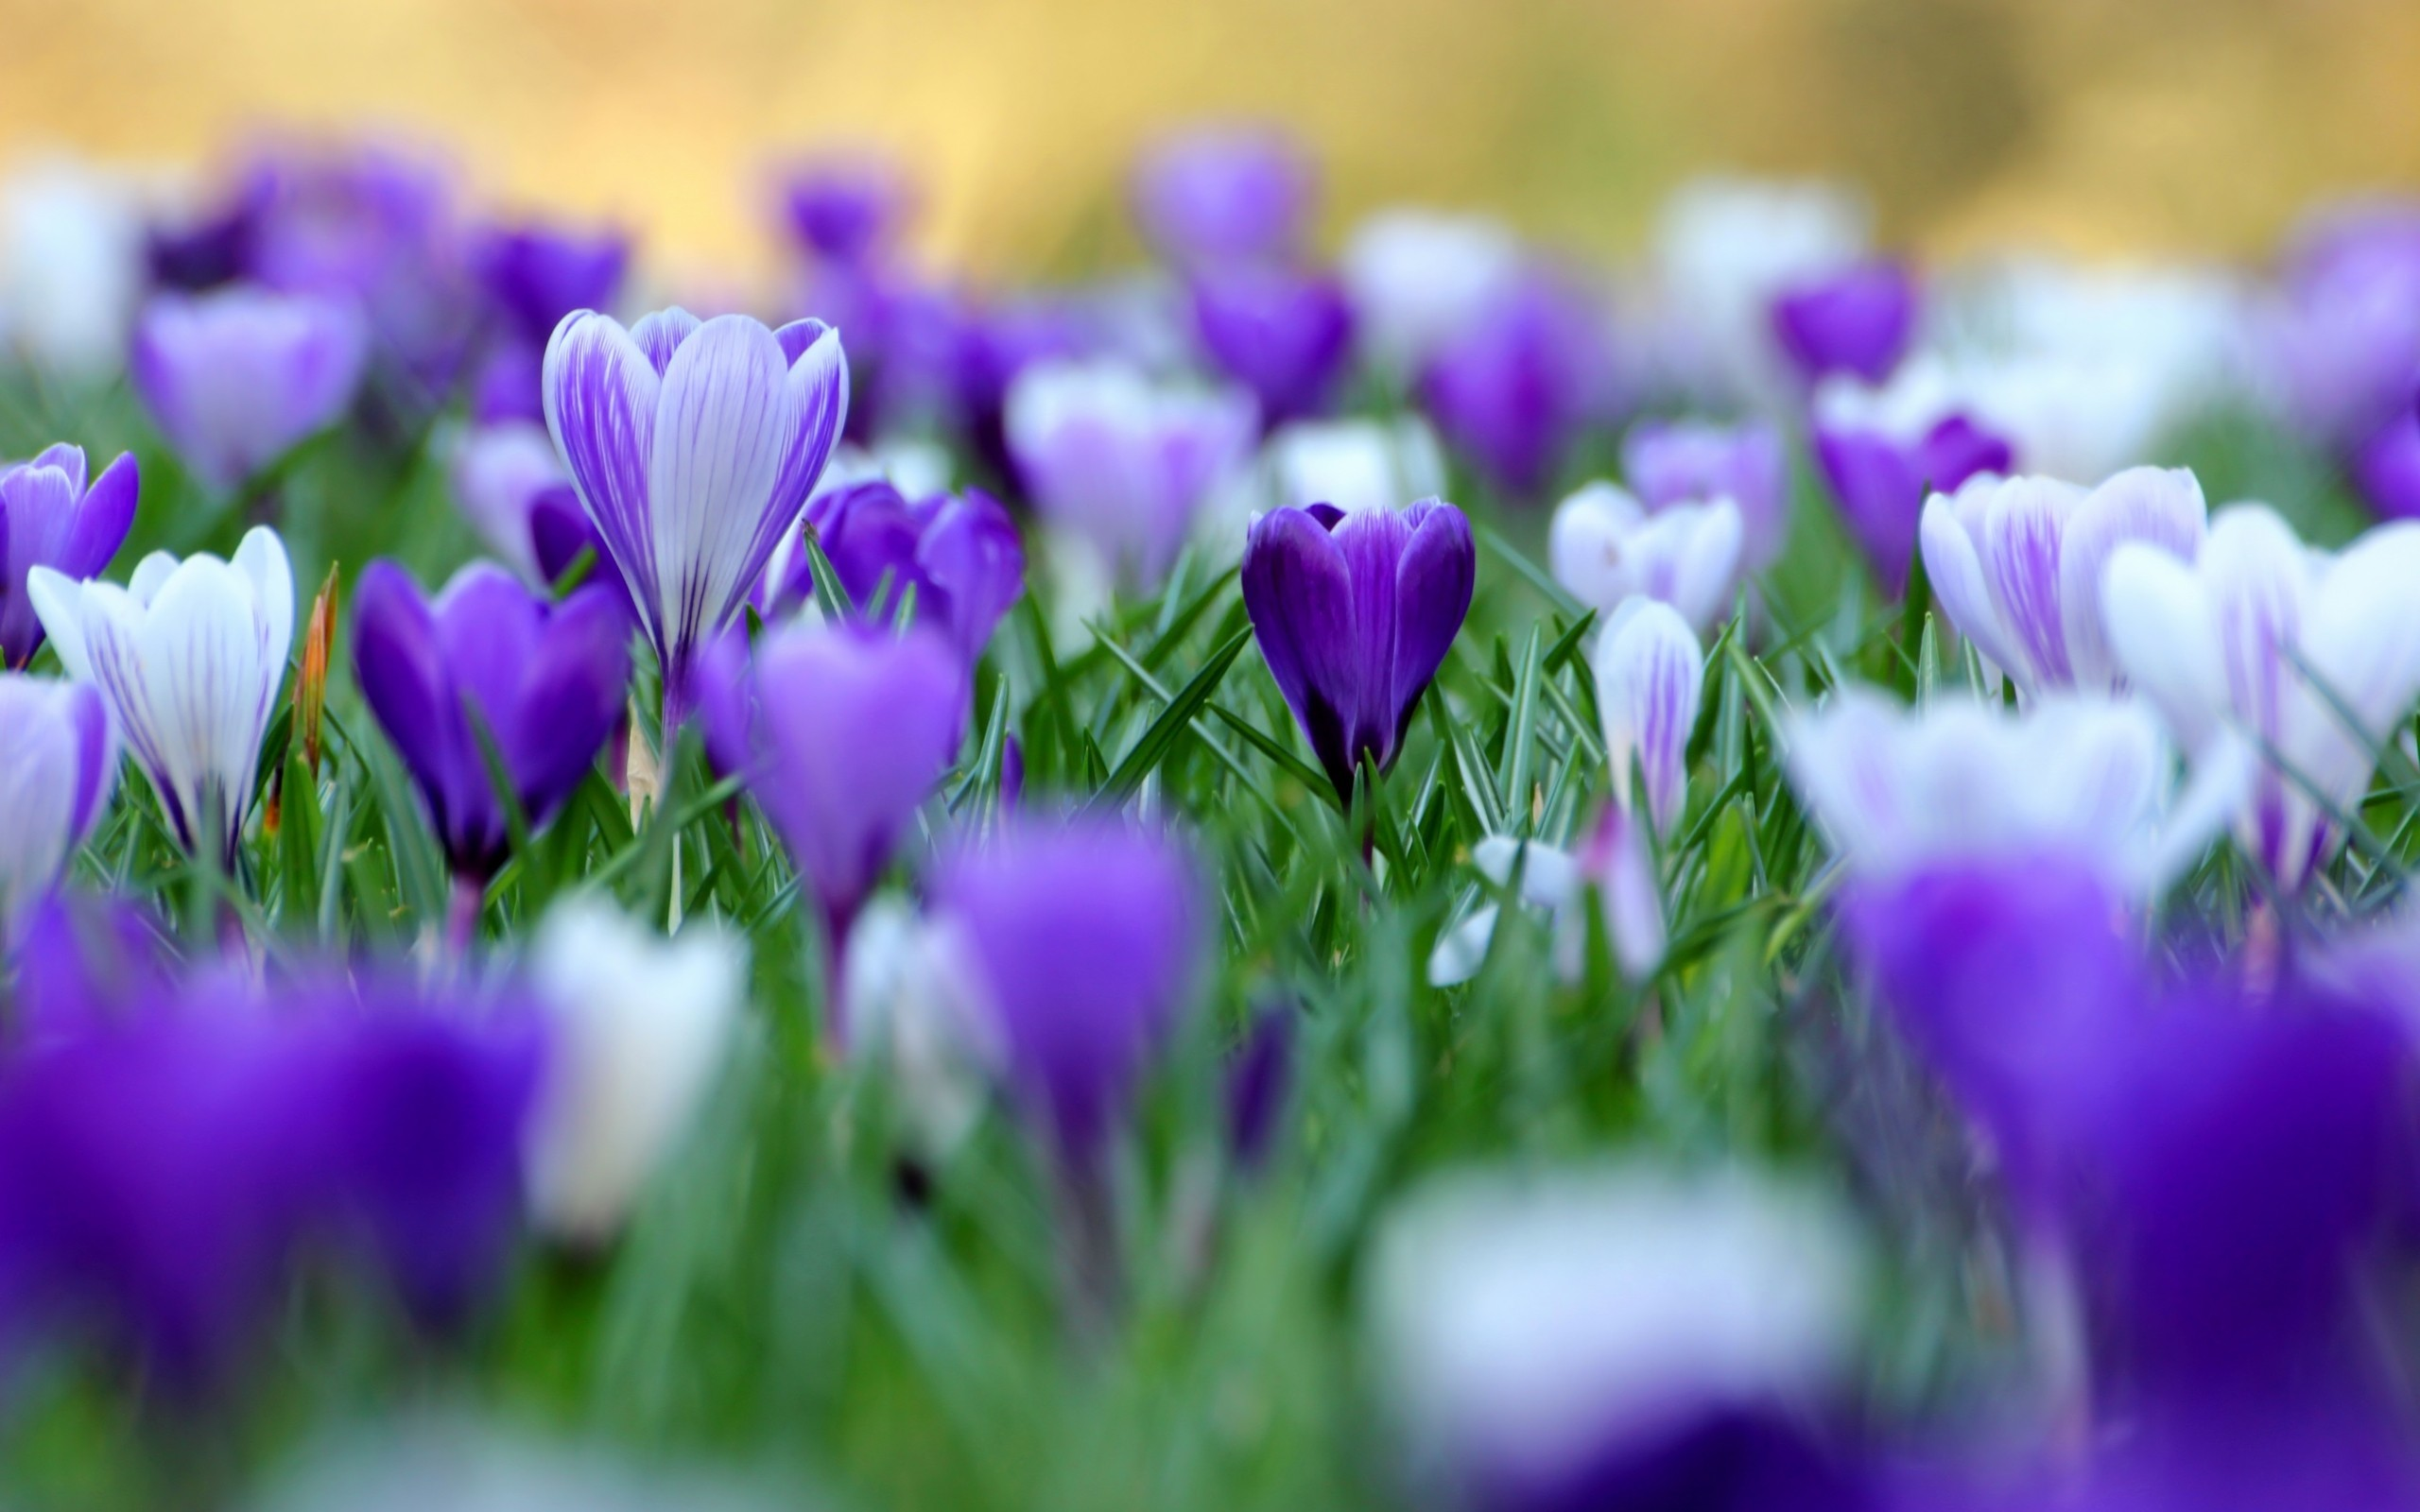 Res: 2560x1600, Nature Flowers Crocus Purple Fresh New Hd Wallpaper Your